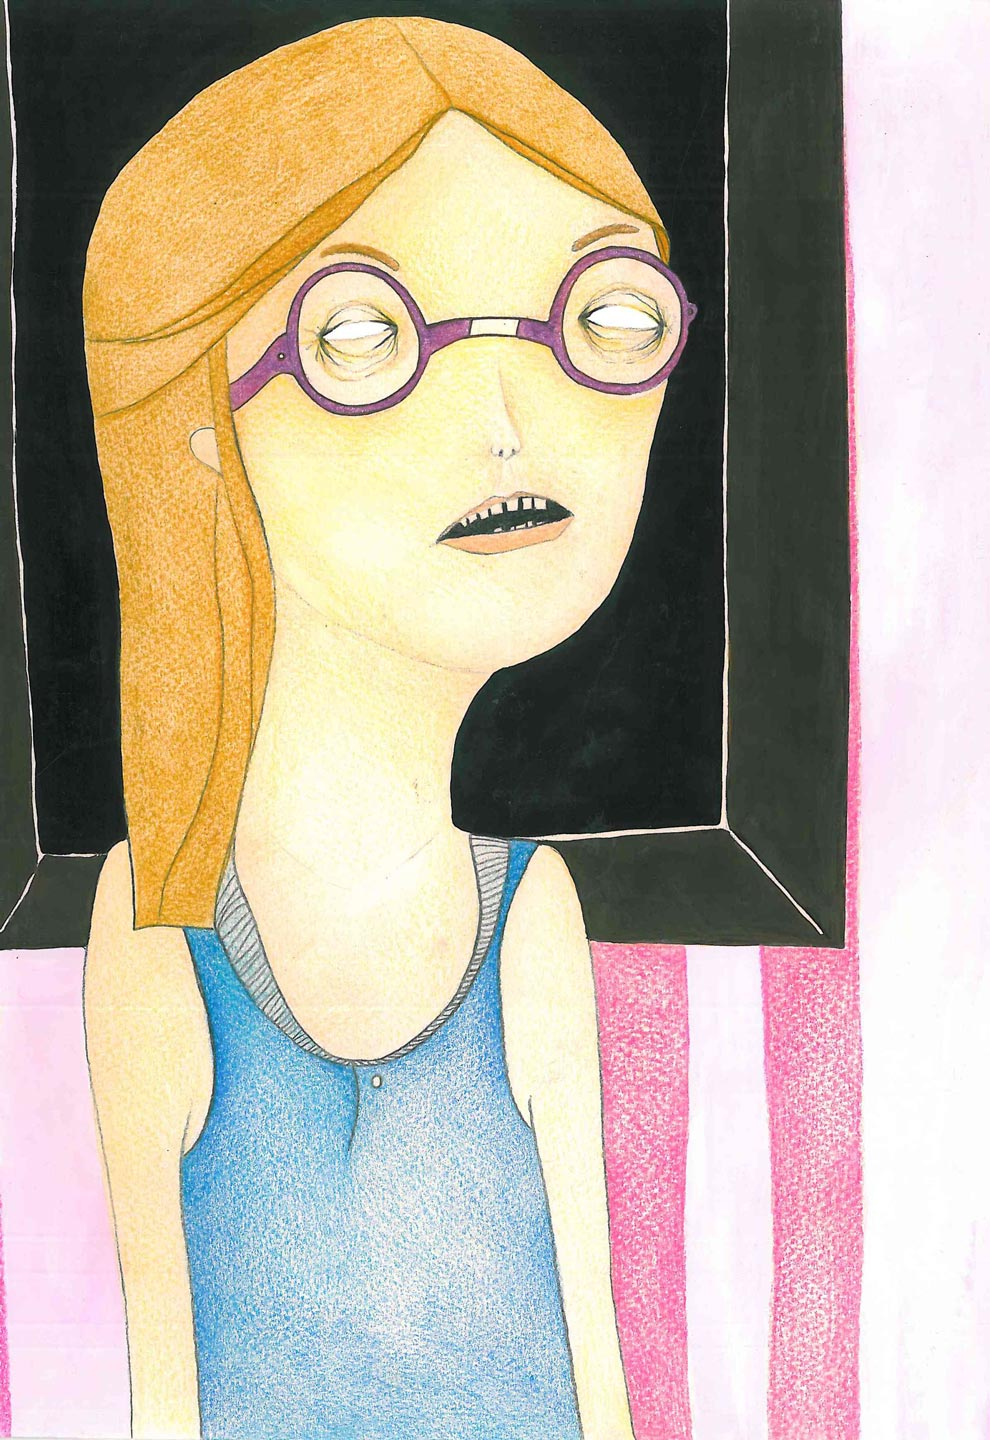 untitled | 21 x 29.5 cm | Colored pencil and ink on paper | 2014